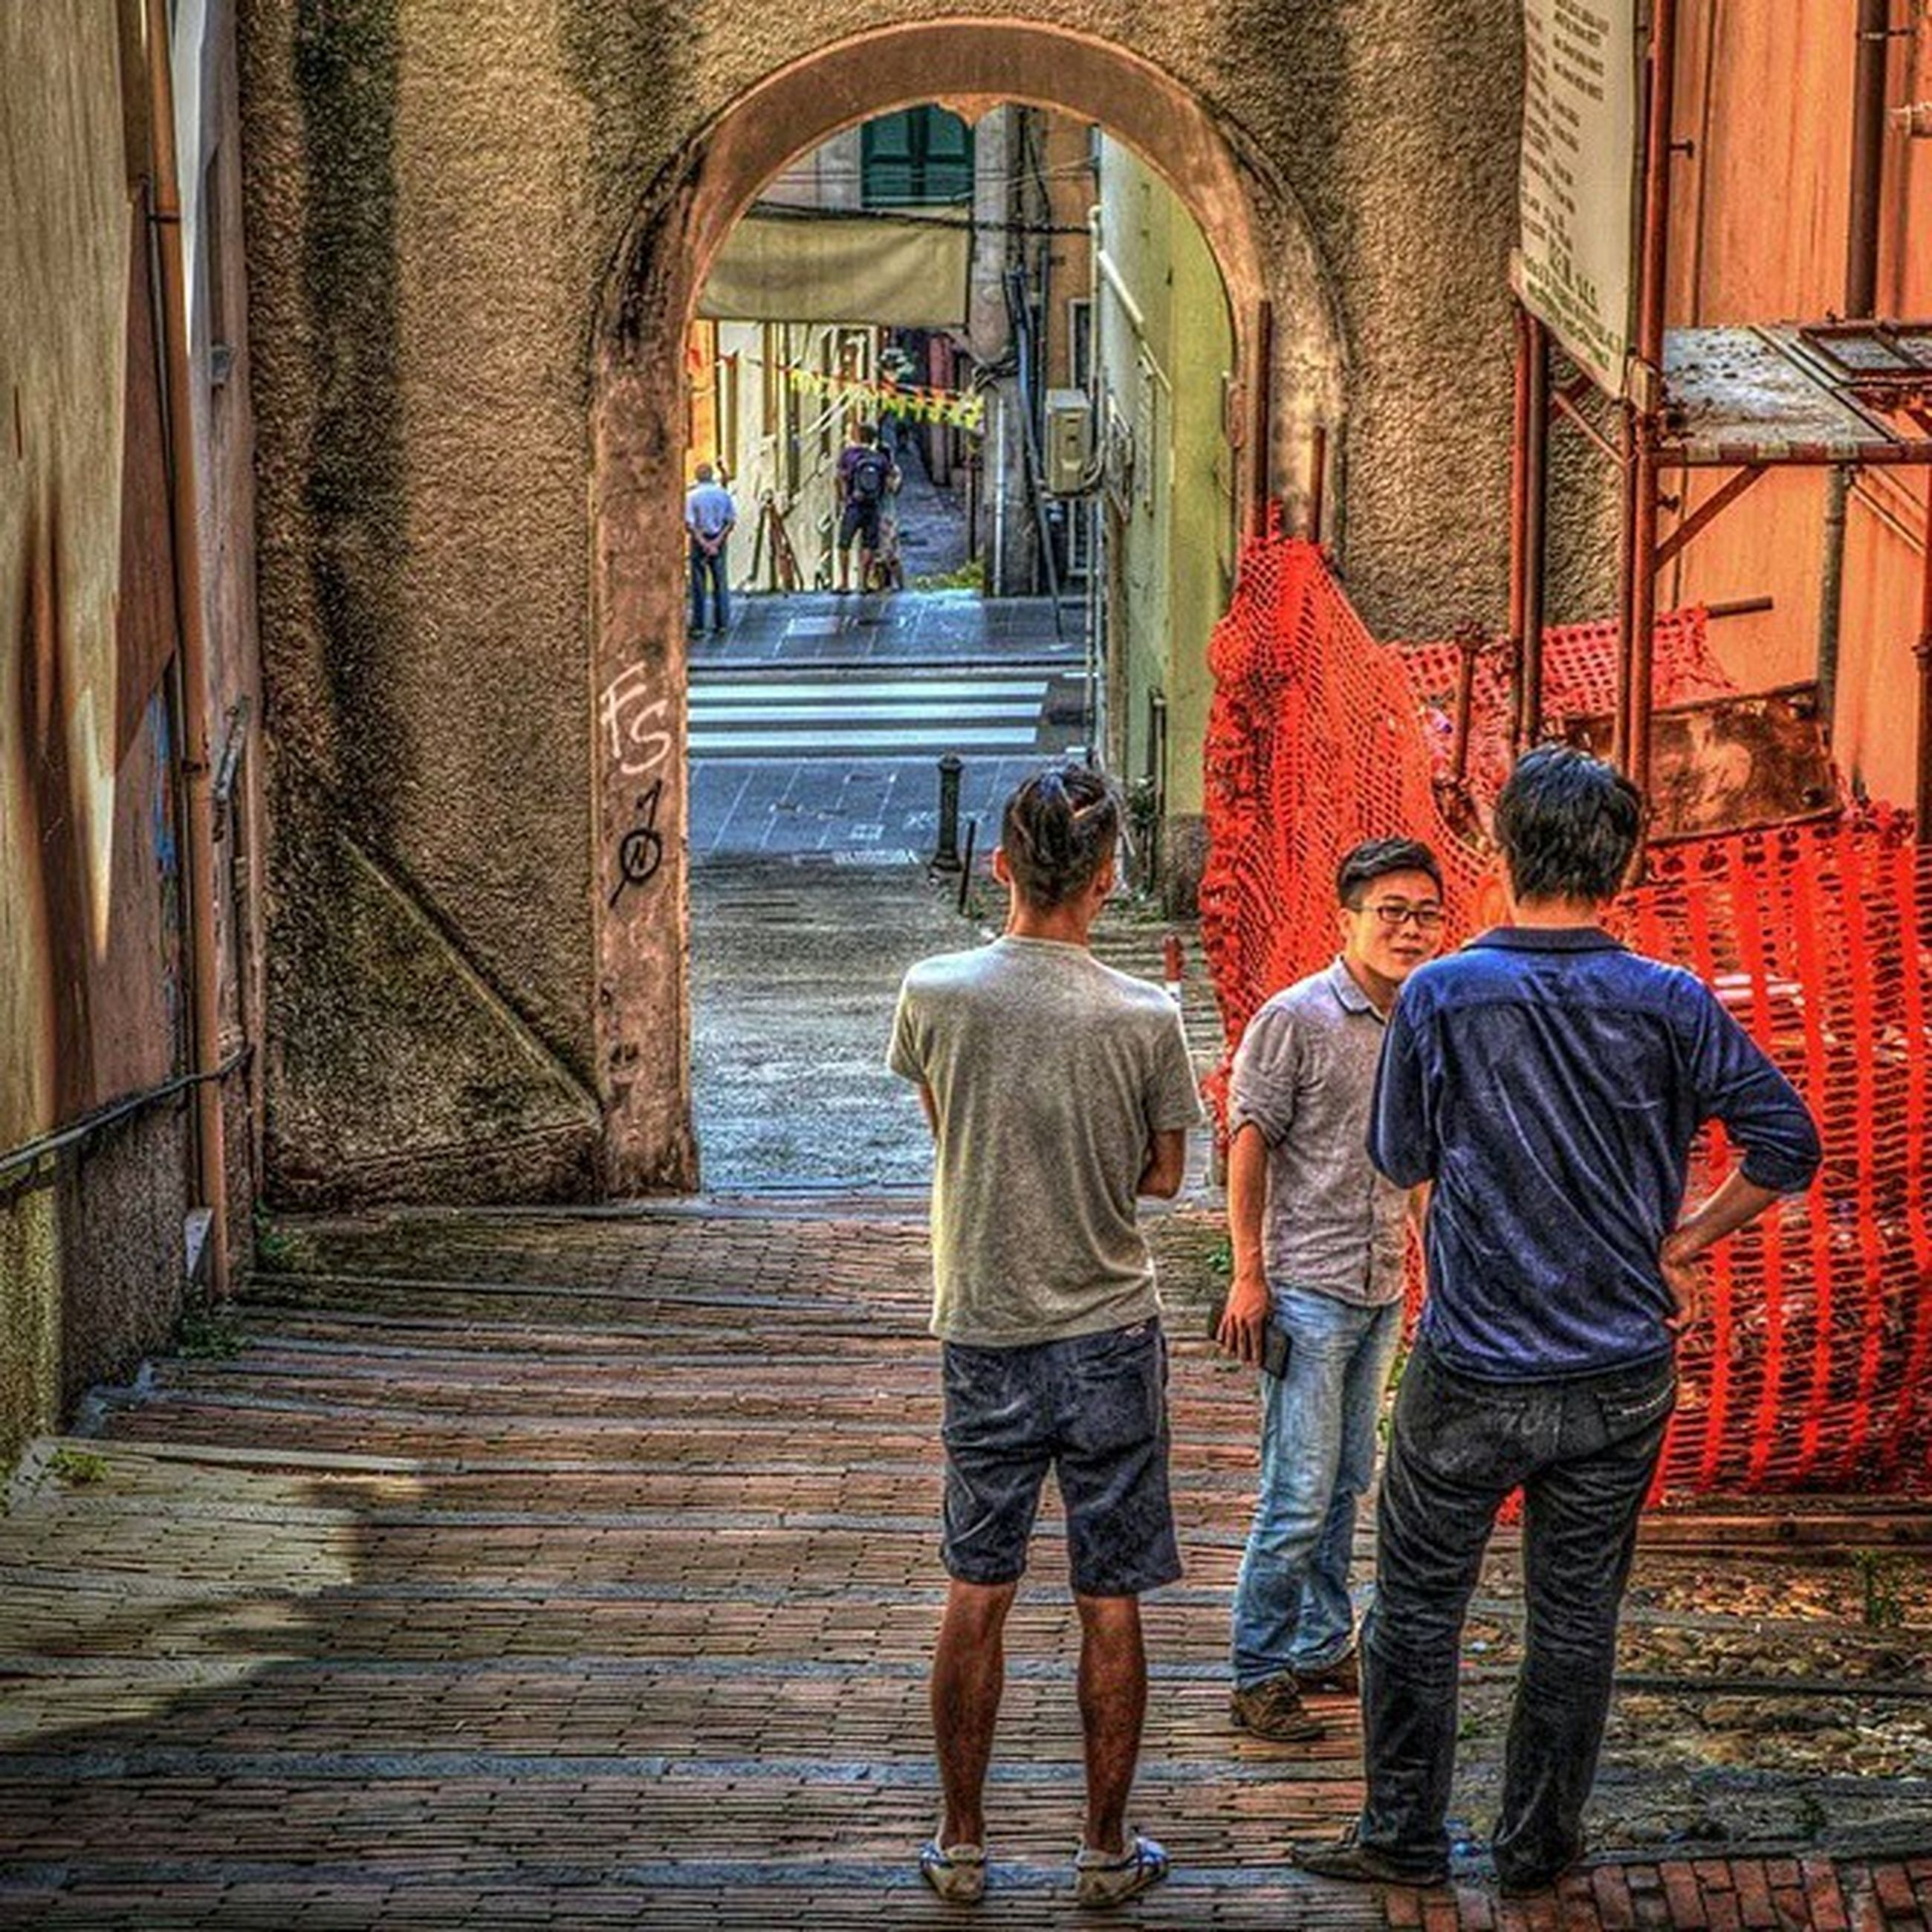 architecture, built structure, building exterior, full length, lifestyles, men, rear view, person, casual clothing, leisure activity, walking, standing, togetherness, arch, building, boys, bonding, window